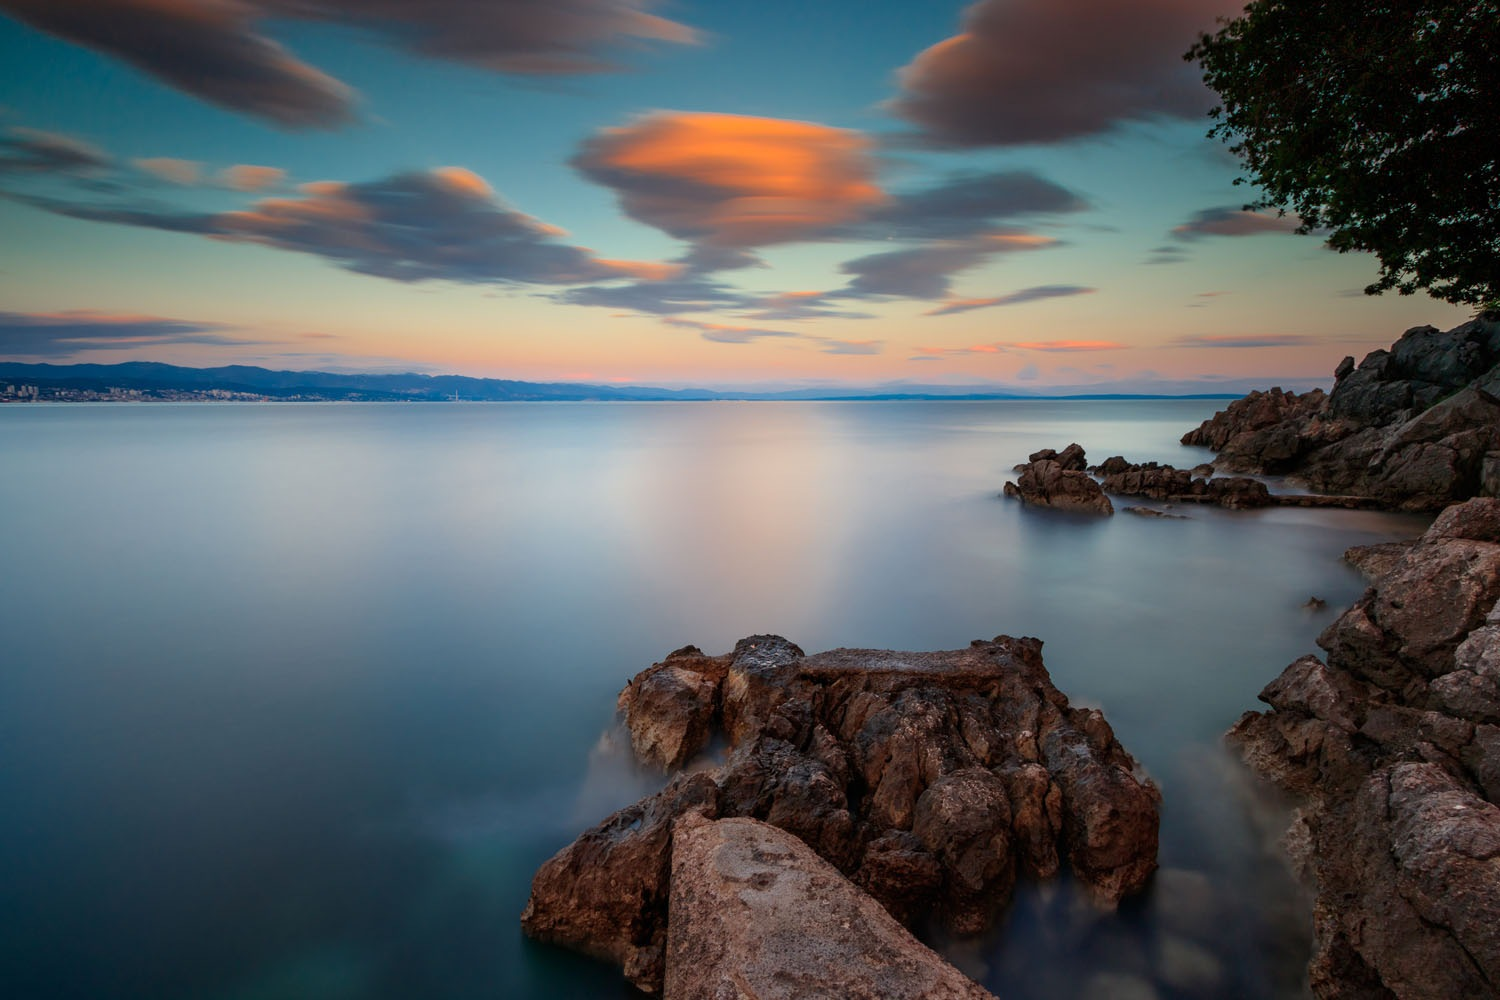 sunset in Opatija by Nikolay Tatarchuk